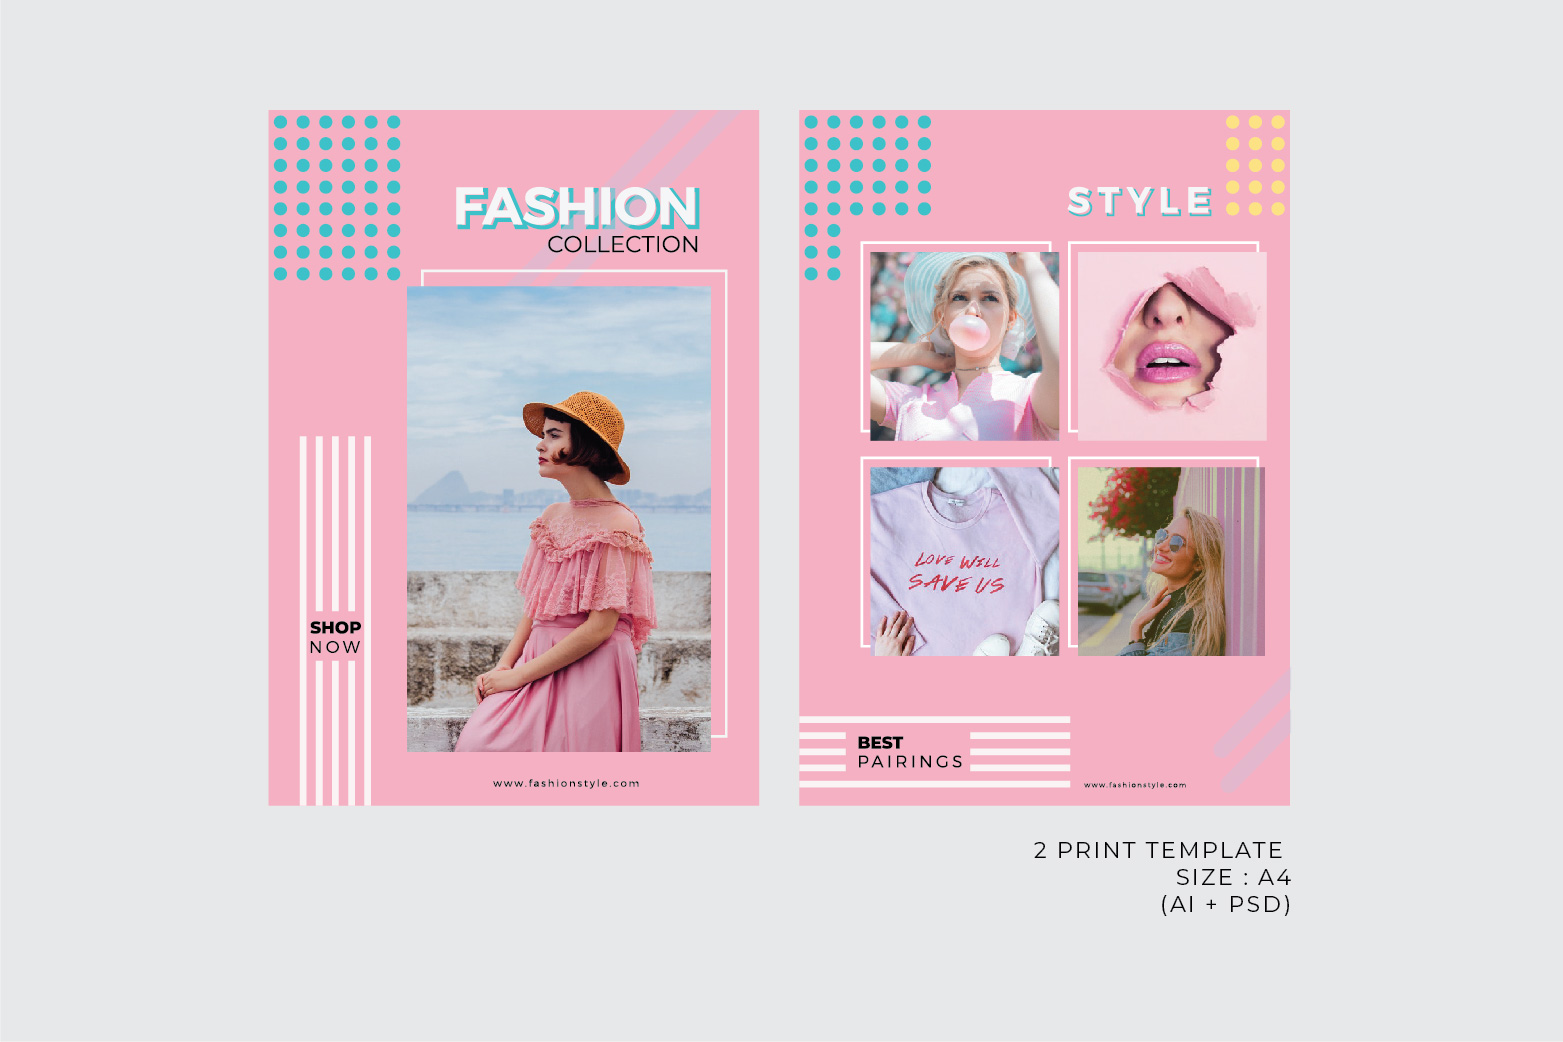 Fashion Template - 2 Poster & 5 InstaStories example image 3